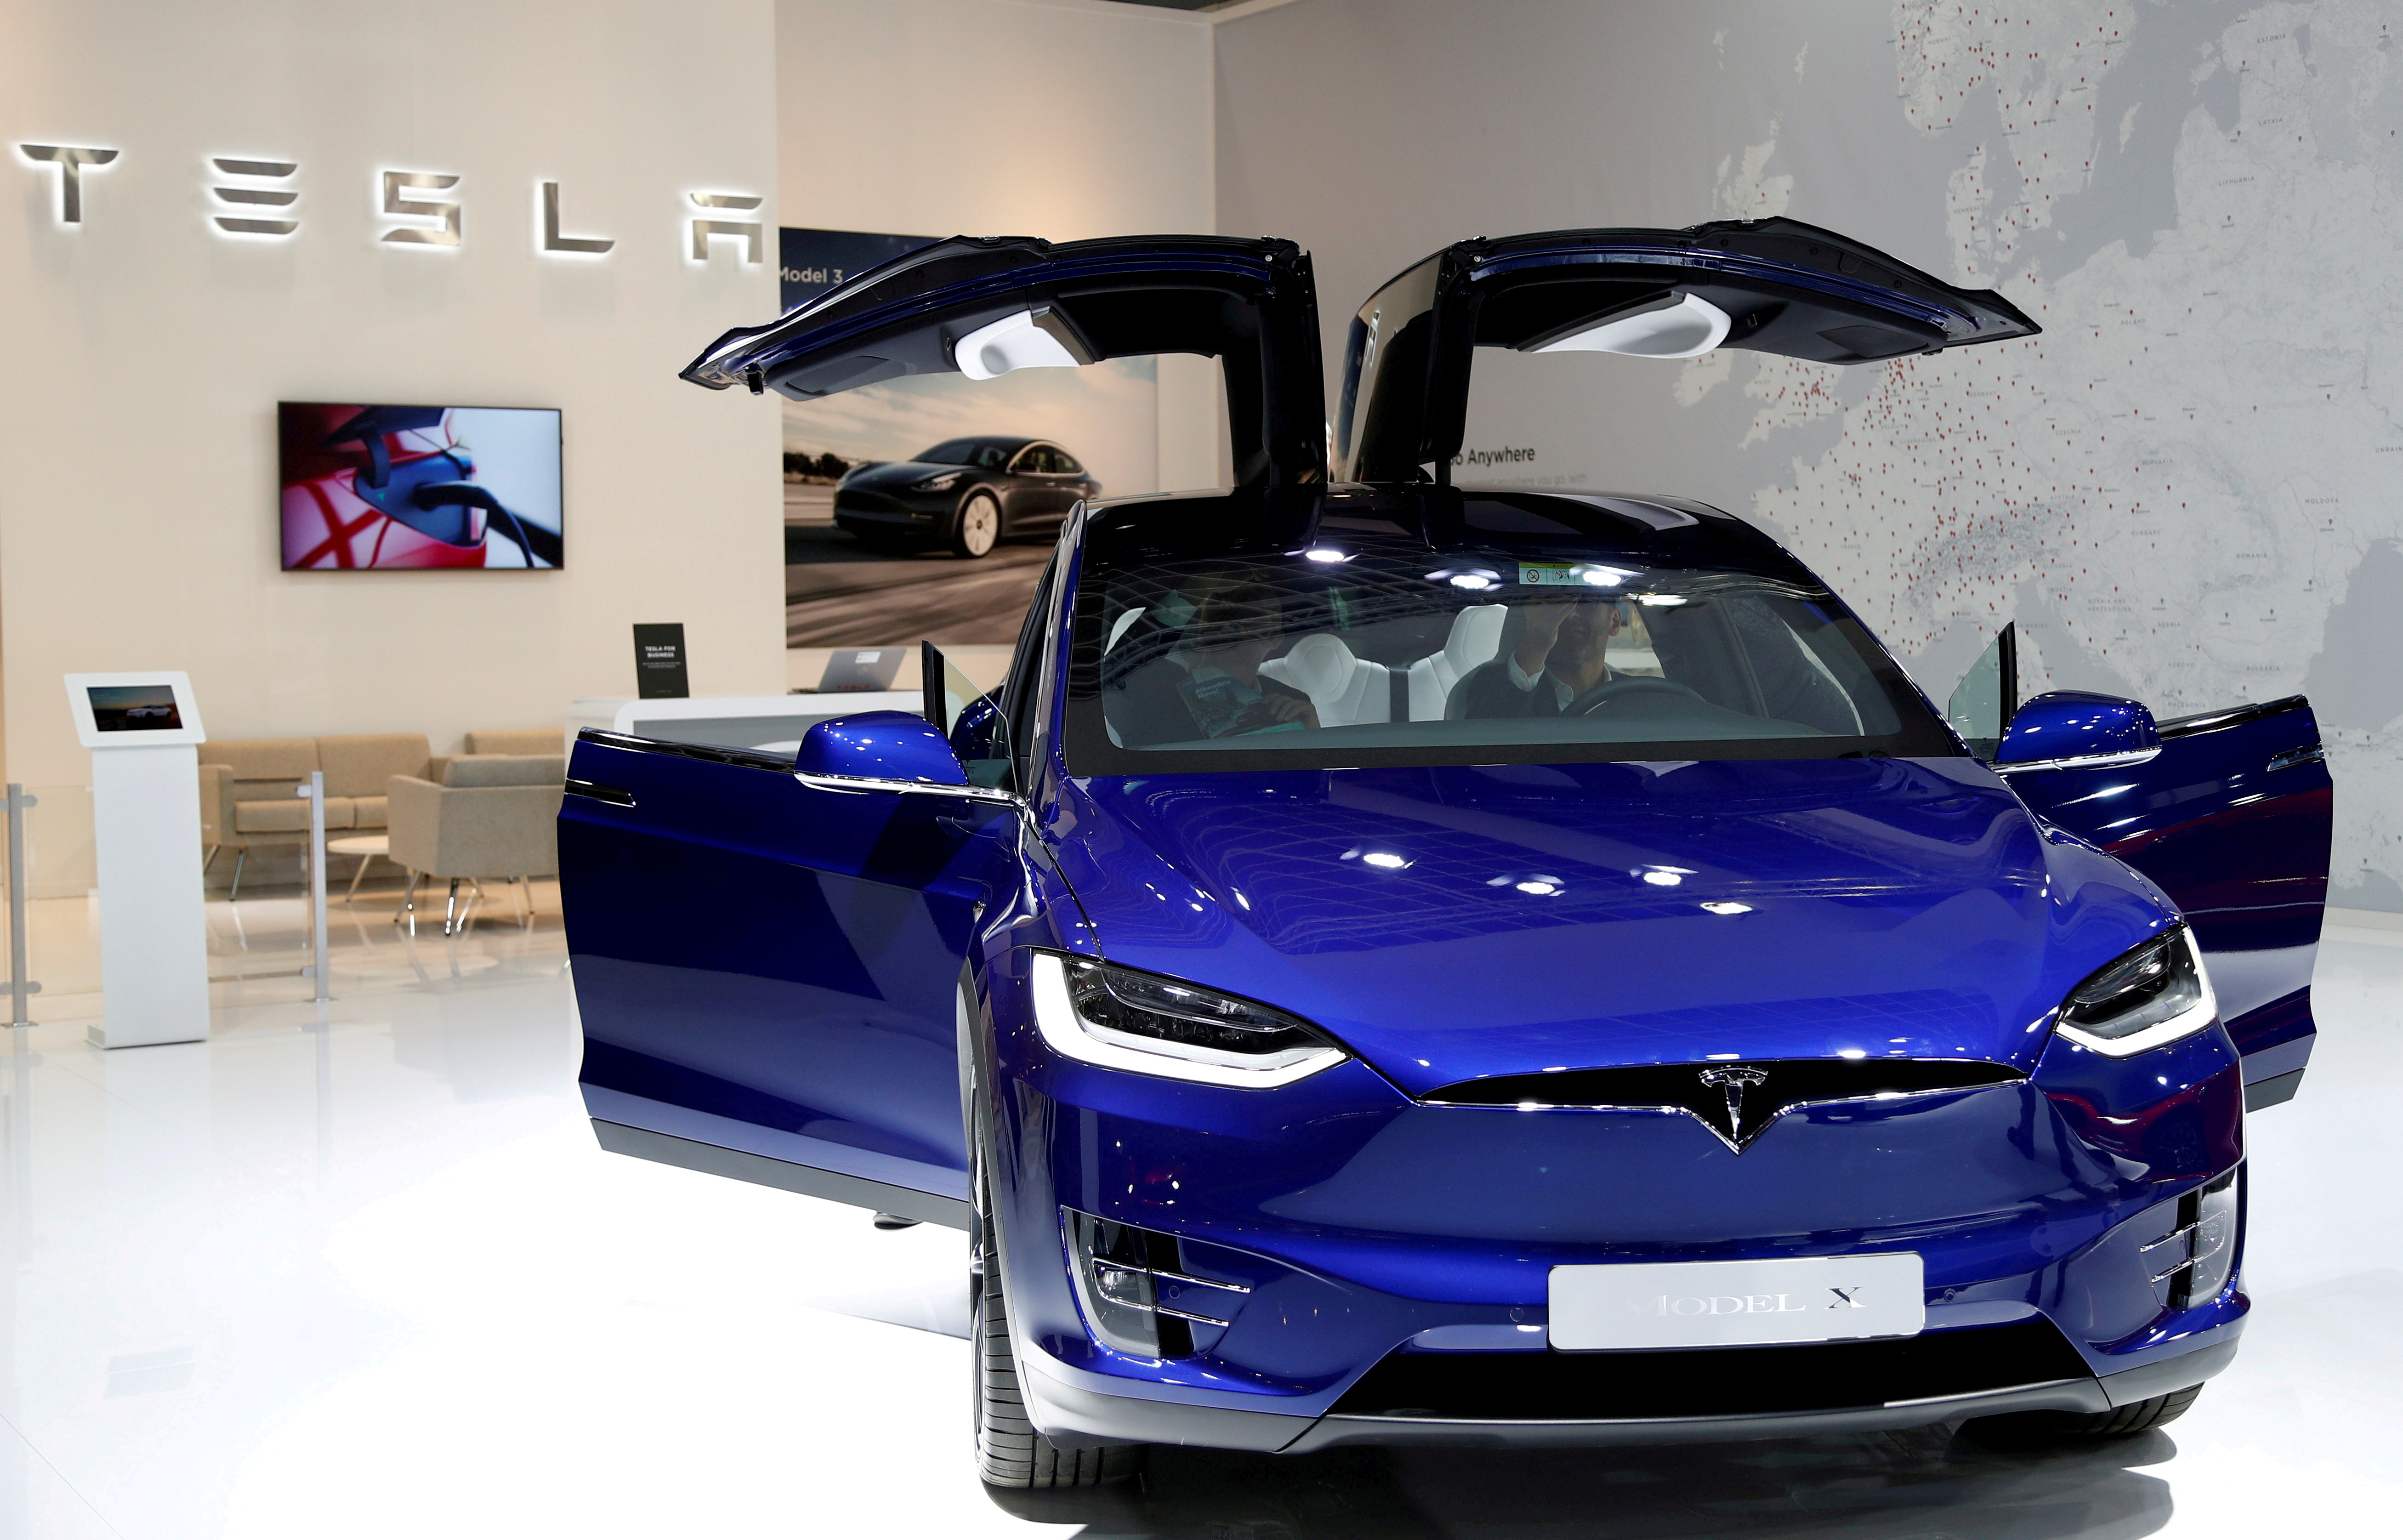 A Tesla Model X electric car is seen at the Brussels Motor Show, Belgium, January 9, 2020. REUTERS/Francois Lenoir